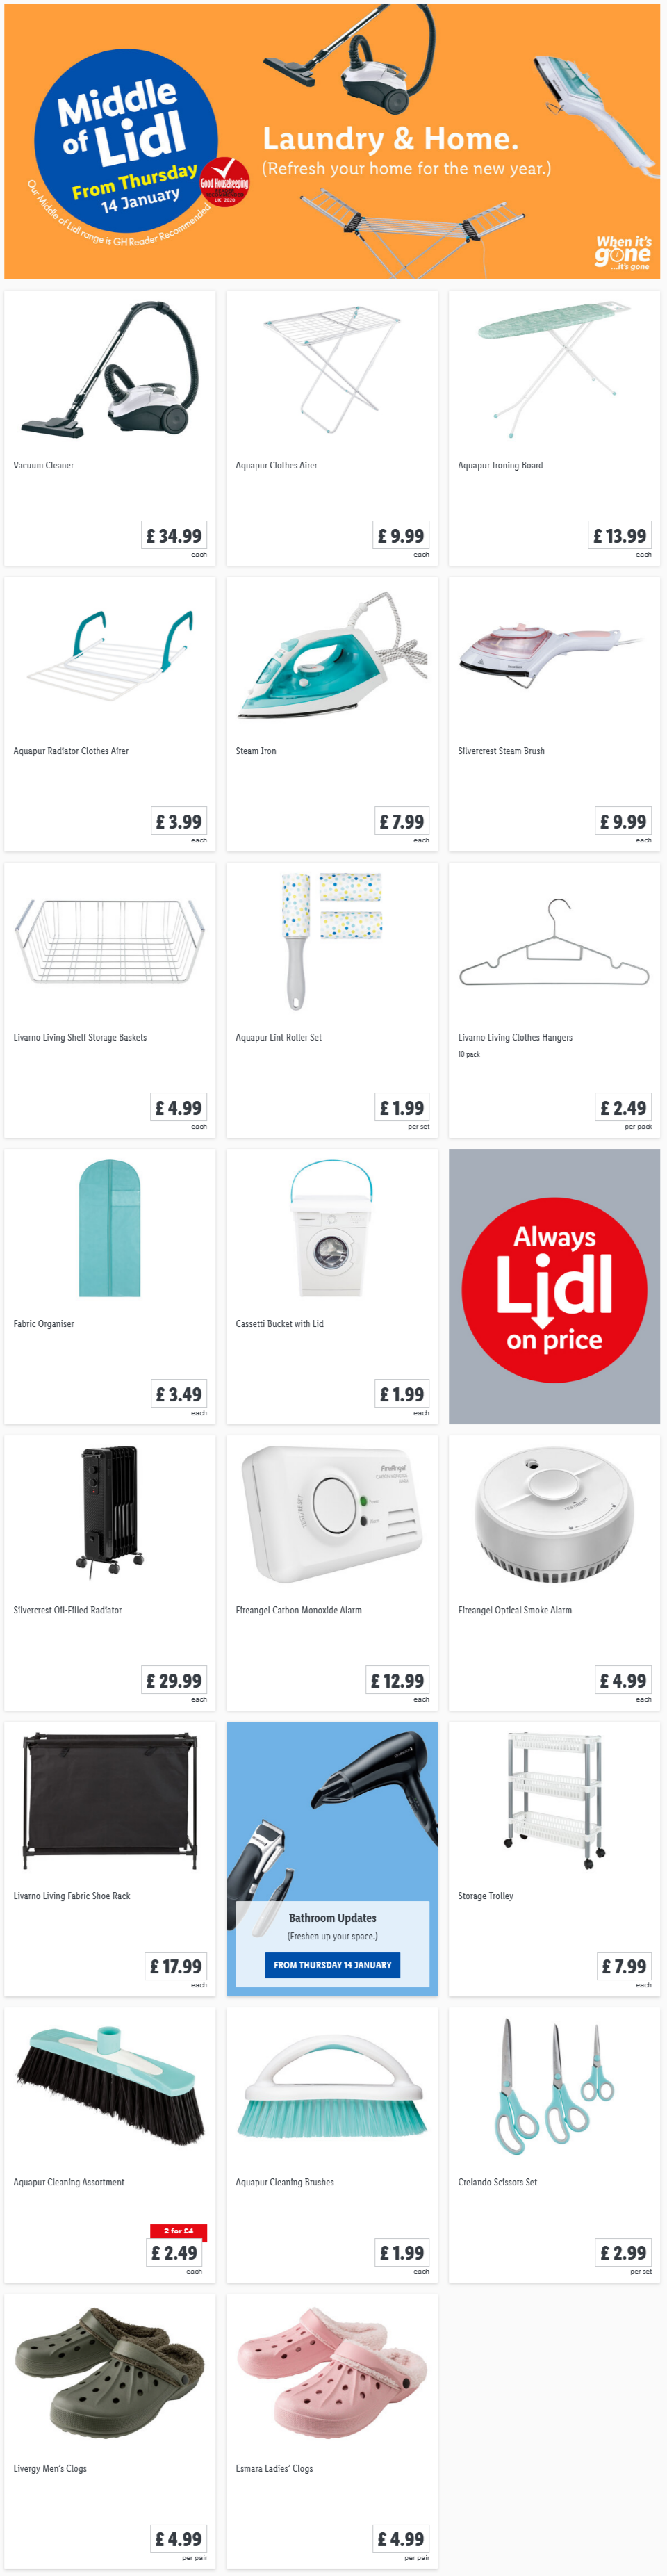 LiDL Laundry & Home From 14th January 2021 LIDL Offers this Thursday